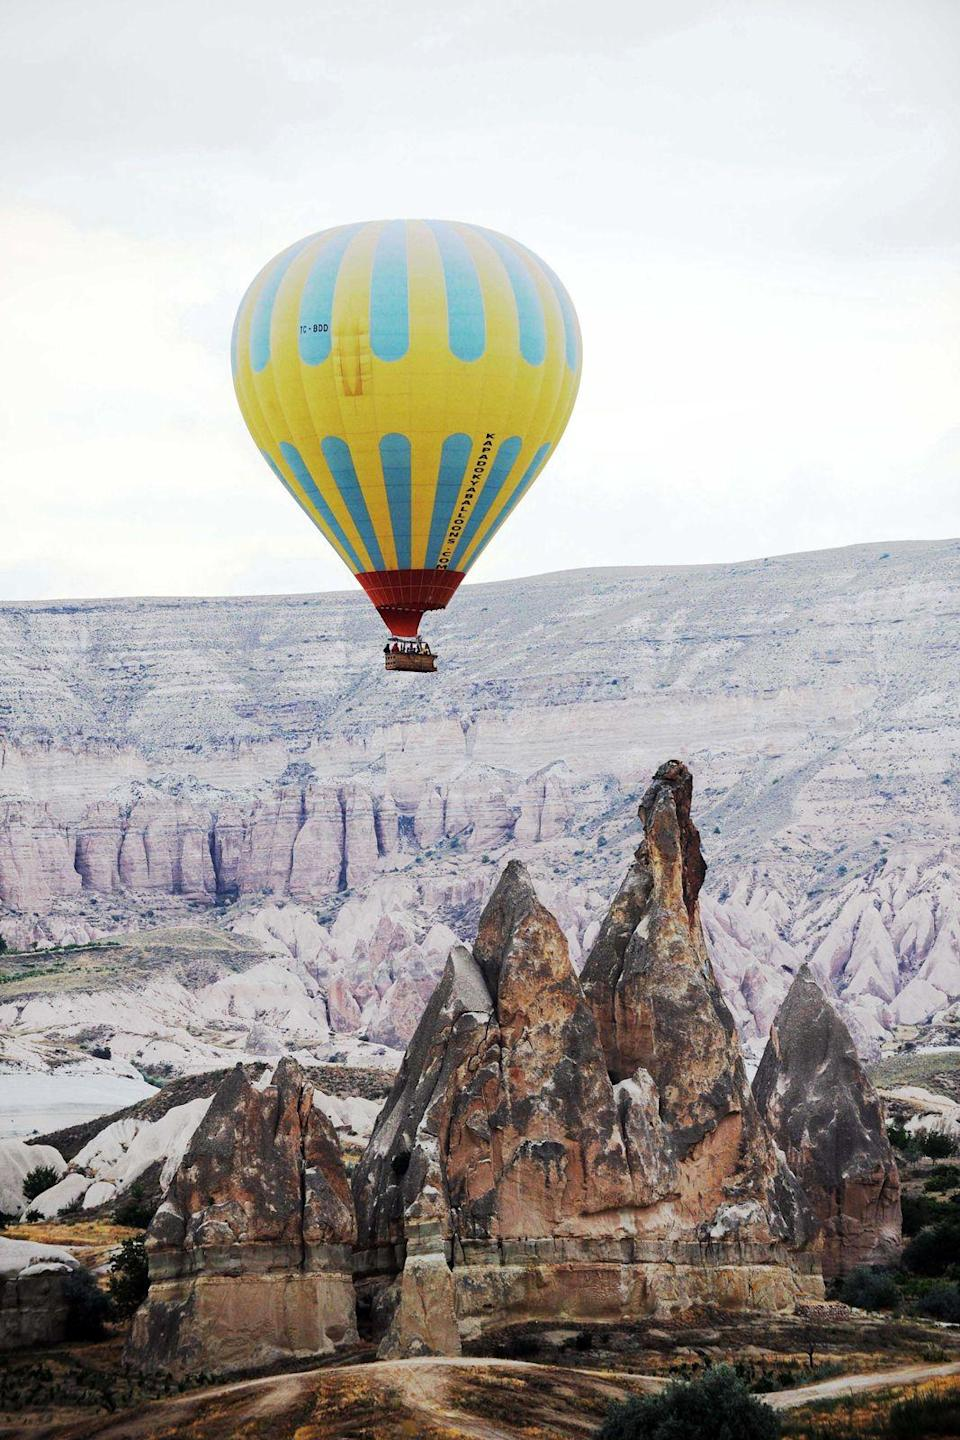 """<p><strong>Cappadocia, Turkey</strong></p><p>The Cappadocia region of Turkey looks like something created for a fantasy movie, with towering, psychedelic rock formations. The quintessential experience is floating over the landscape in a hot air balloon, and they generally take off in the early morning hours to see the sunrise. Most of the activities are for the outdoorsy — hiking to various rock formations and exploring caves in Ala Dağlar National Park. You can also visit the underground cities of Derinkuyu and Kaymakli, which are carved out below the ground (and not for those with claustrophobia), and head to volcanic rock outcropping Uçhisar Castle.</p><span class=""""copyright"""">Photo: Chine Nouvelle / REX Shutterstock. </span>"""